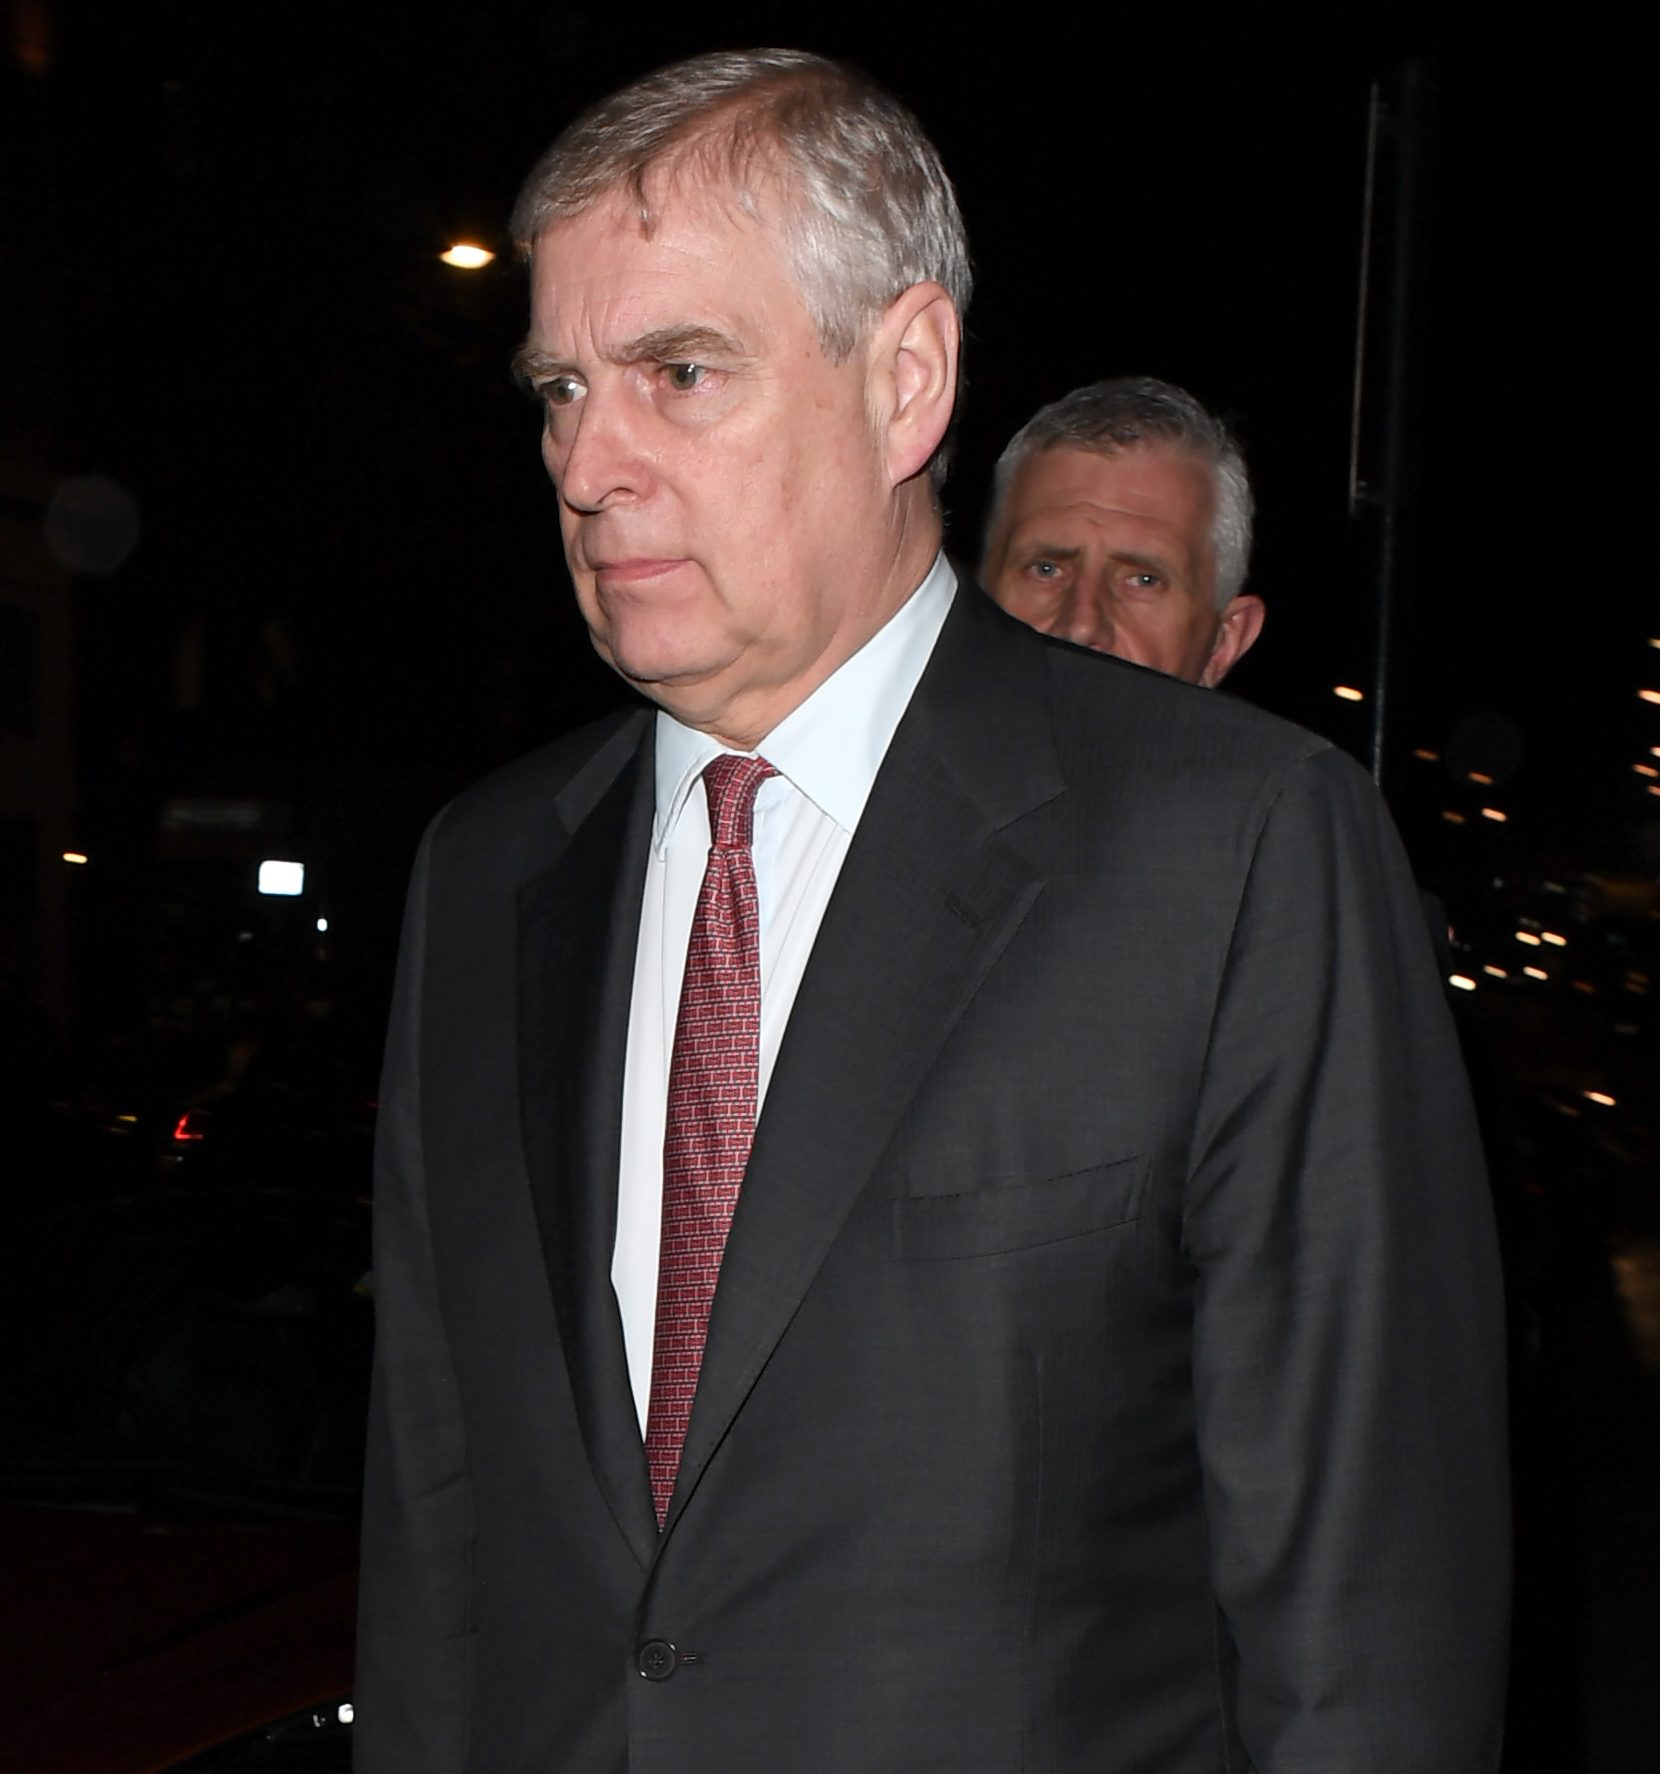 Prince Andrew 'could lose armed security as Home Office recommends major downgrade'